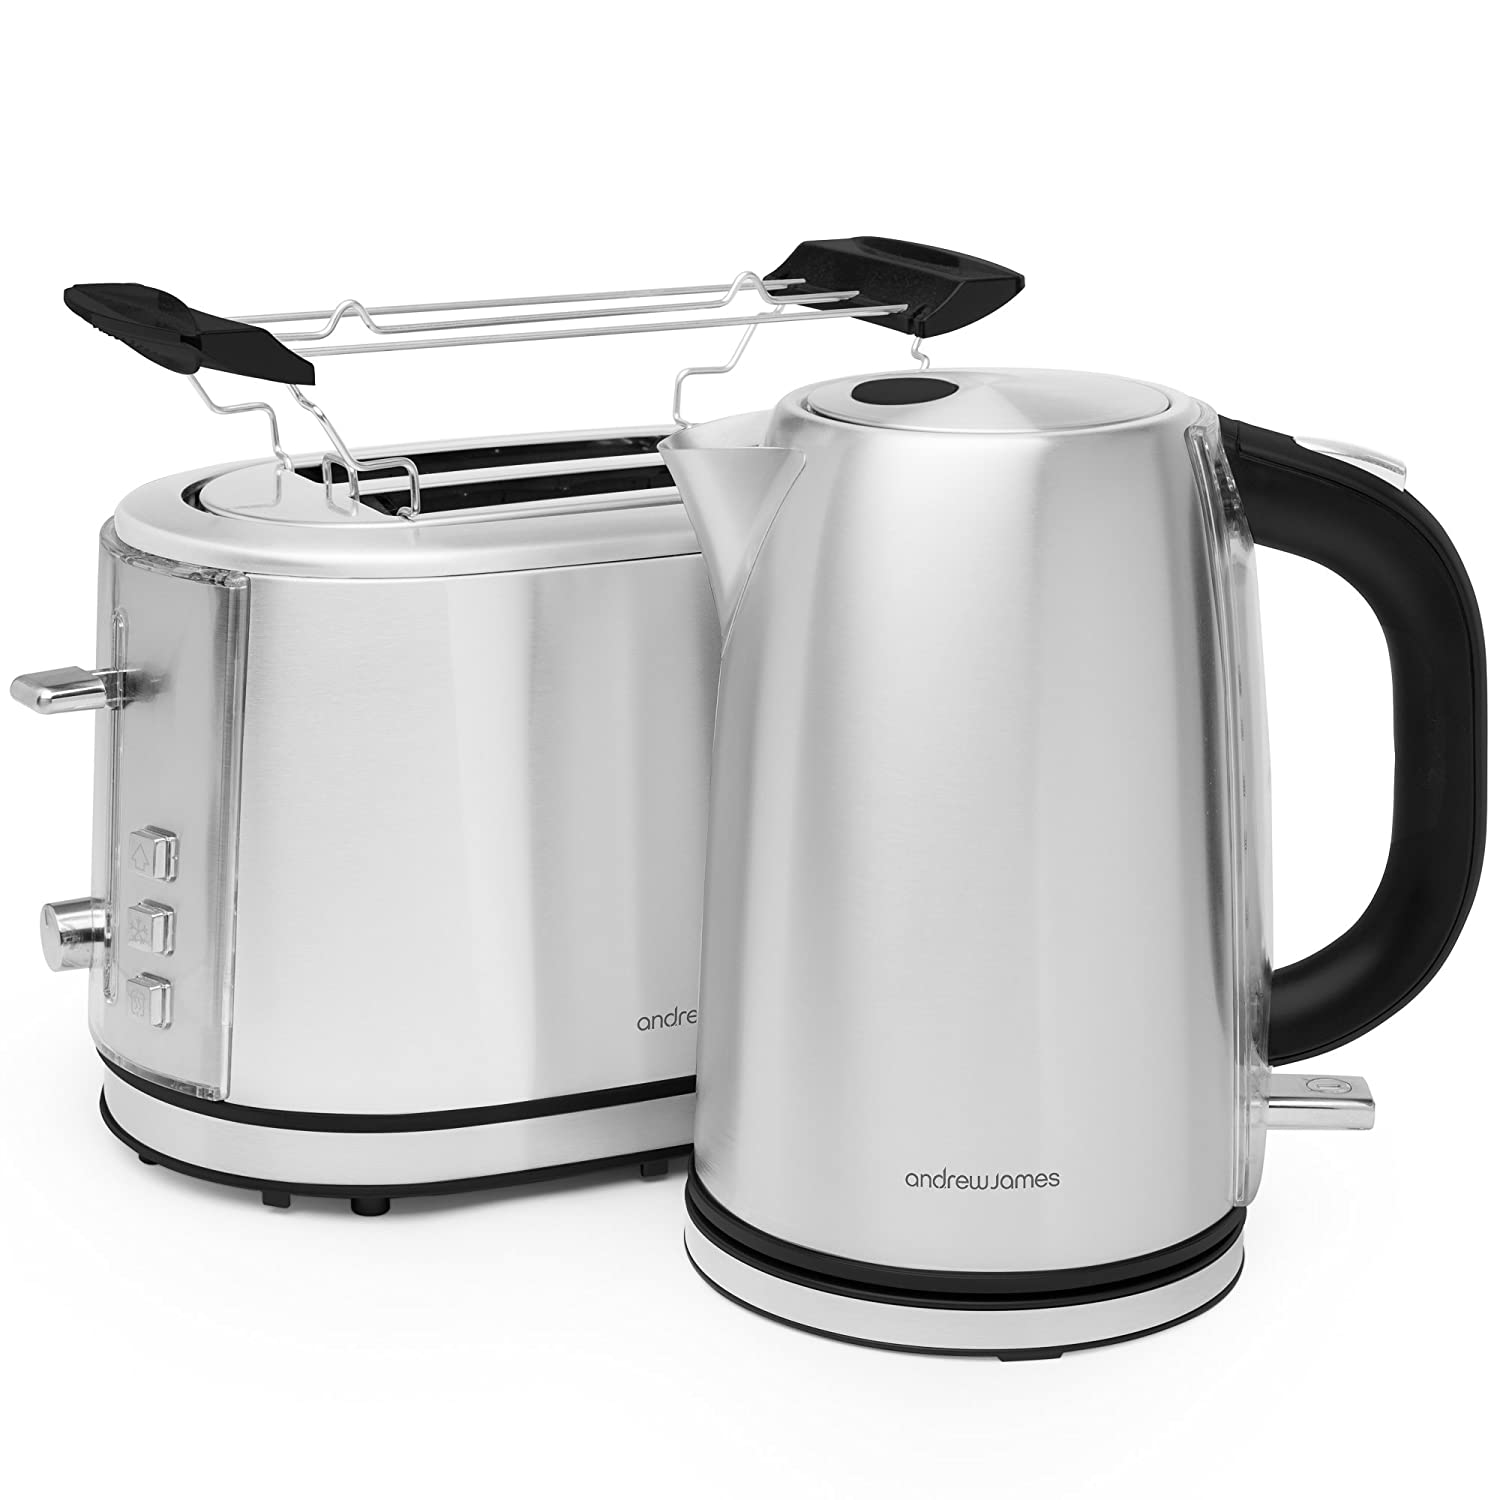 Andrew James Argentum Toaster and Kettle Set | 2 Slice Toaster with 6 Heat levels & Warming Rack| Fast Boil 3000W Electric Cordless Jug Kettle with Swivel Base & Boil Dry Protection | Silver Stainless Steel